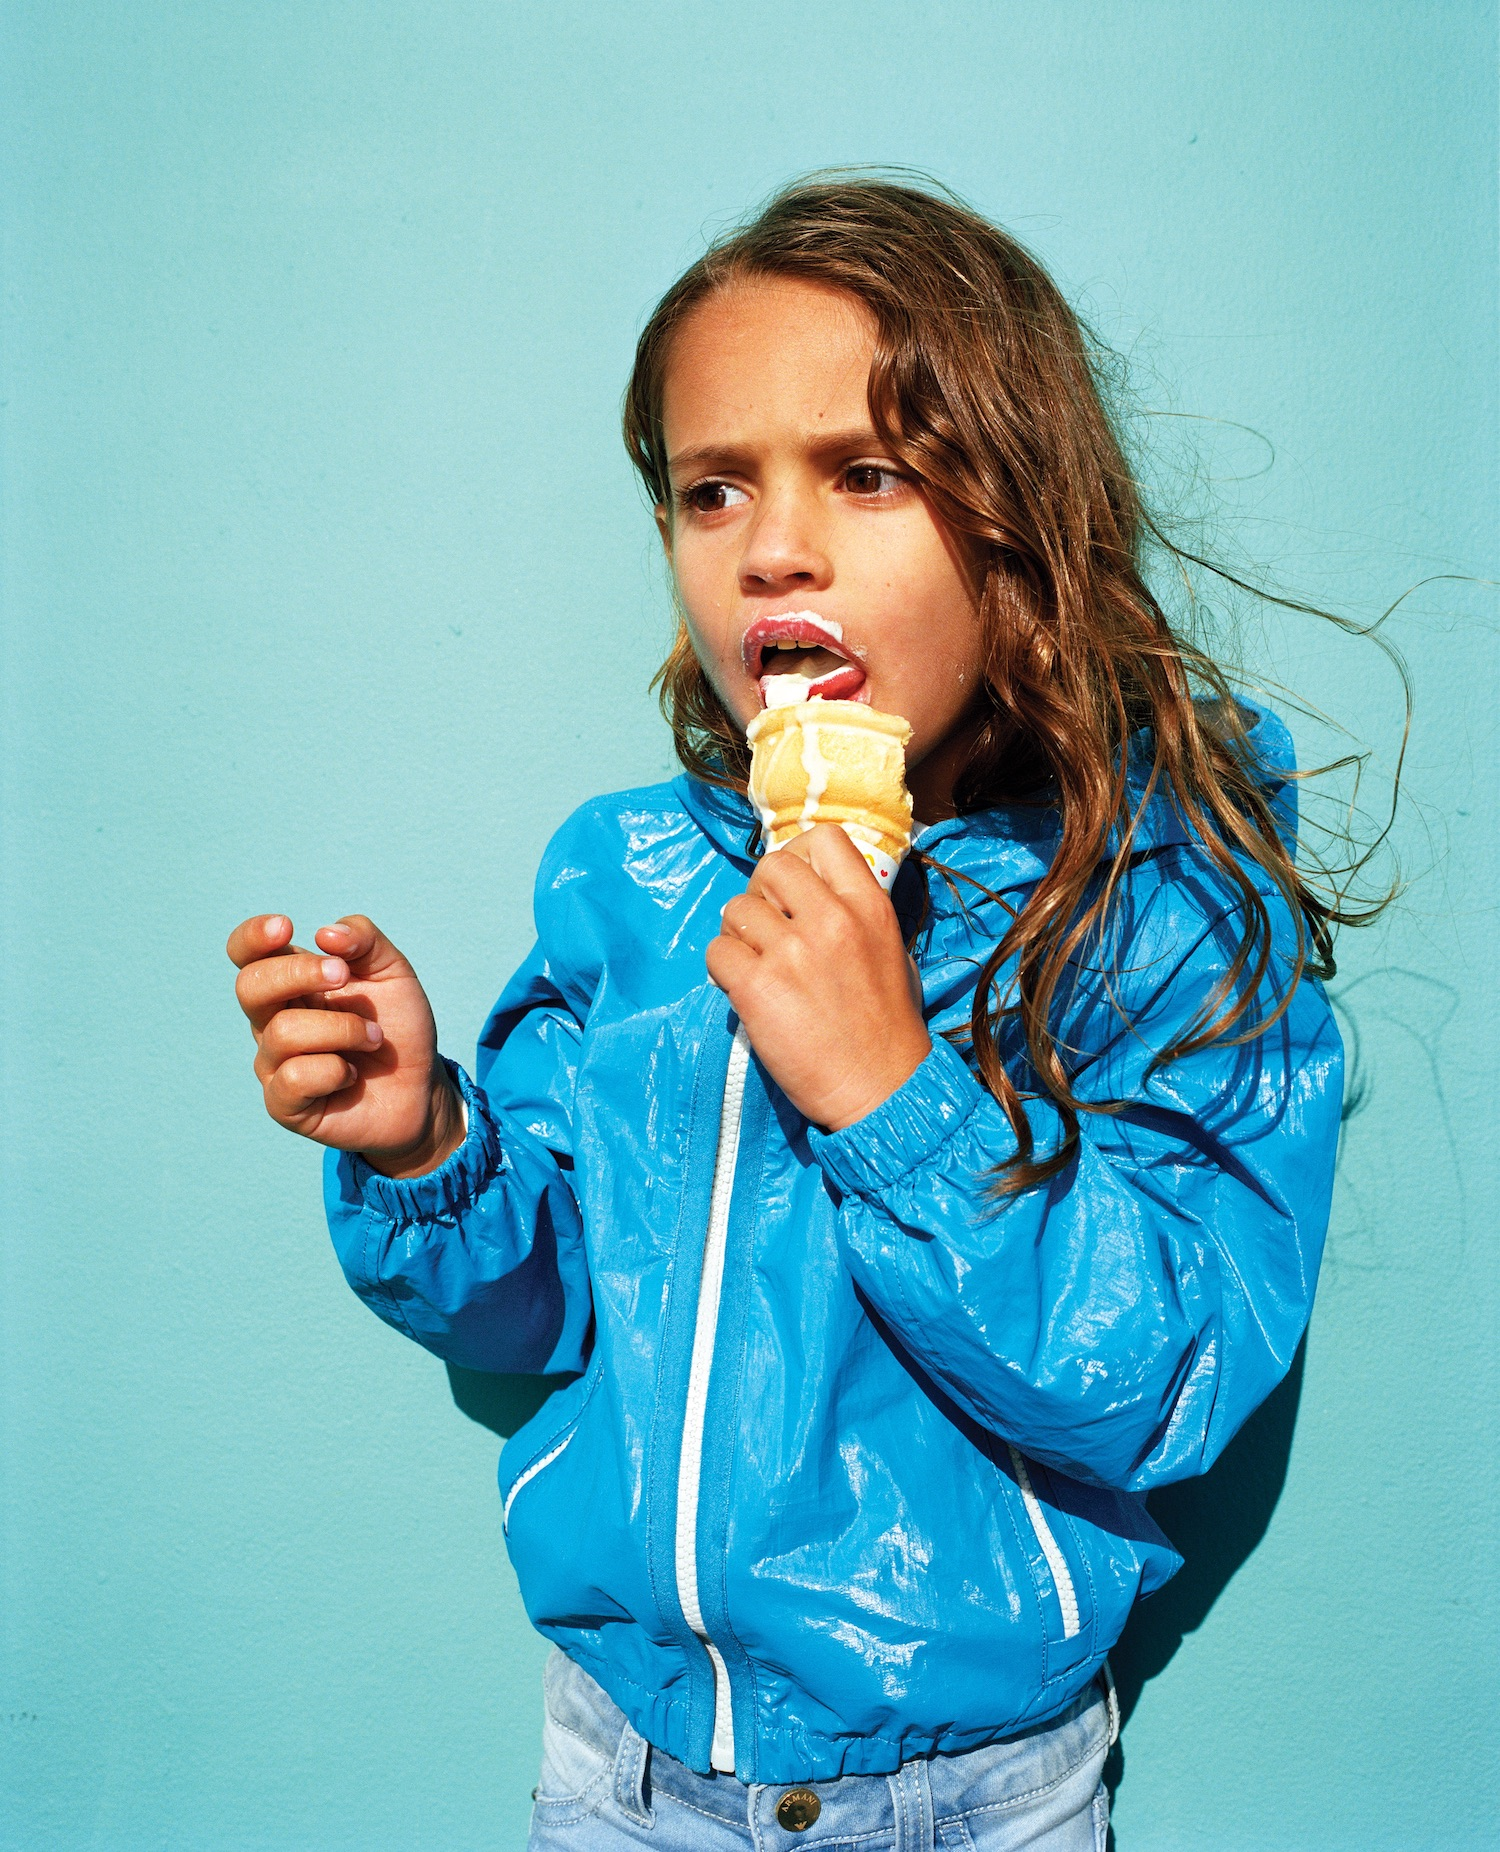 Ed Templeton, Evan Cassidy Eats Ice Cream, 2017